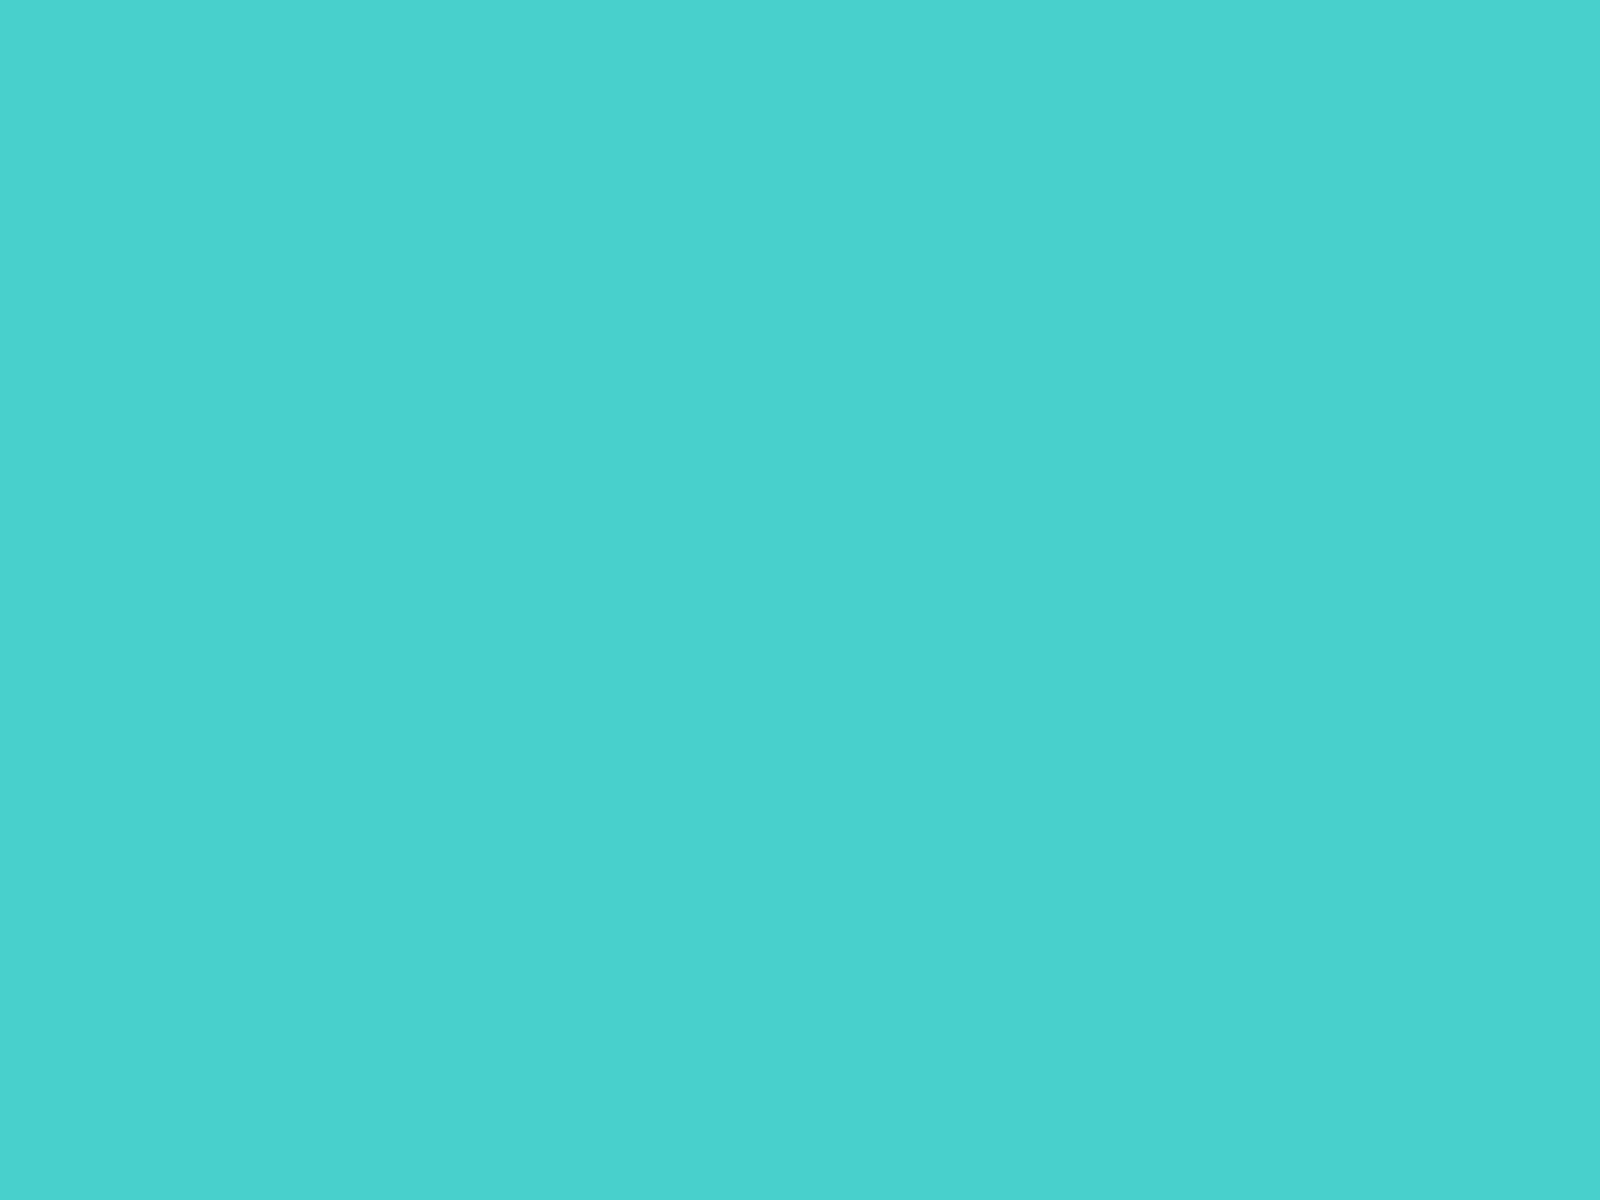 1600x1200 Medium Turquoise Solid Color Background